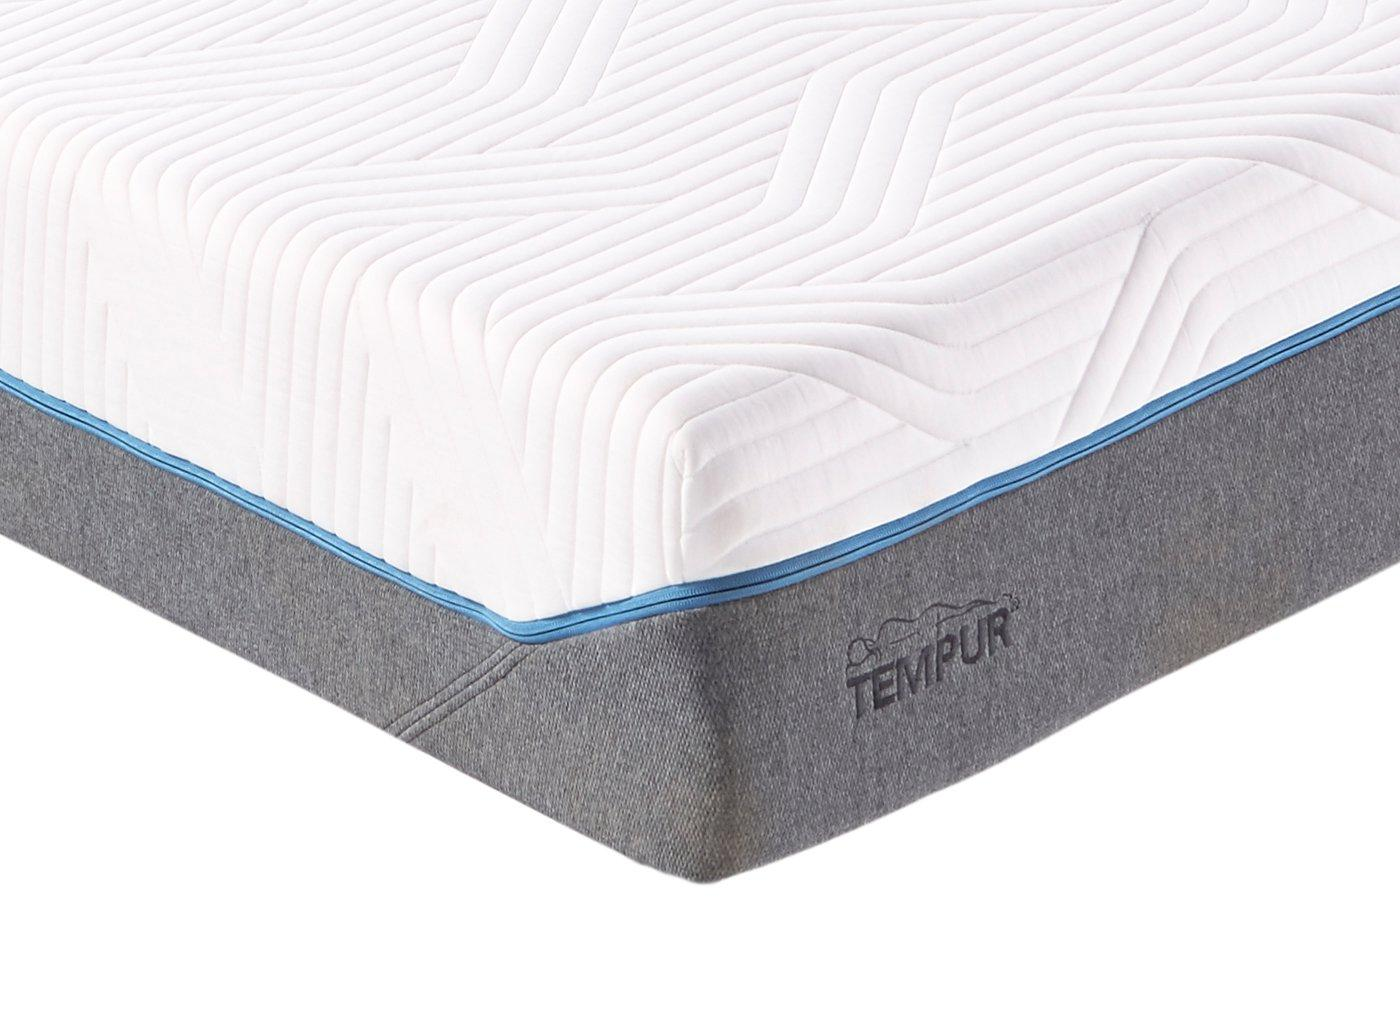 Tempur Cooltouch Cloud Elite Mattress - Medium